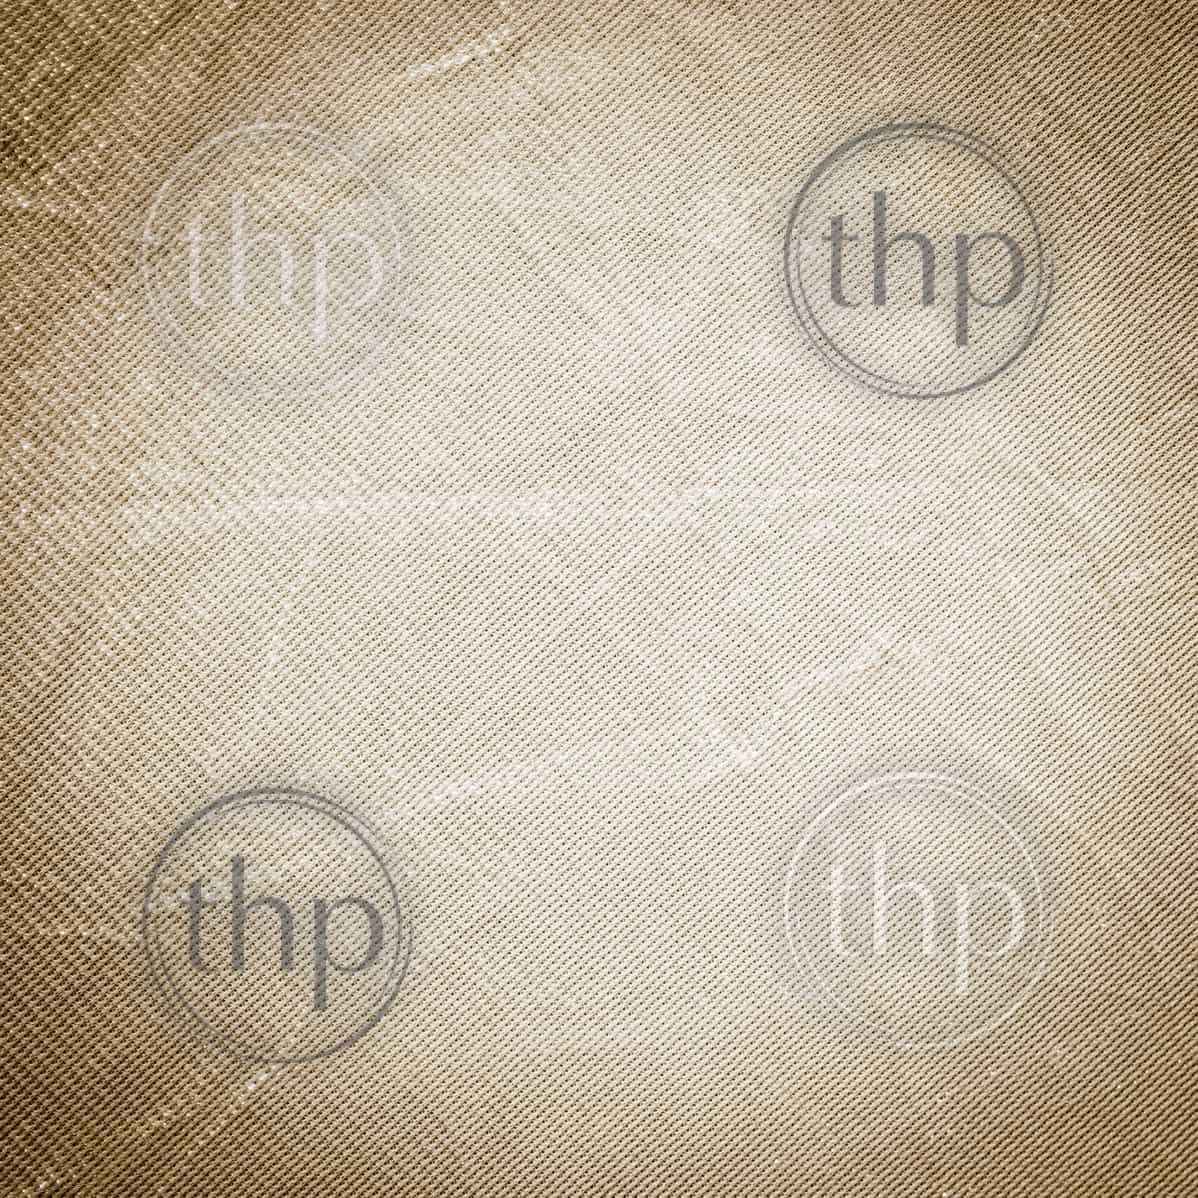 Creased and crumpled sepia fabric texture as background